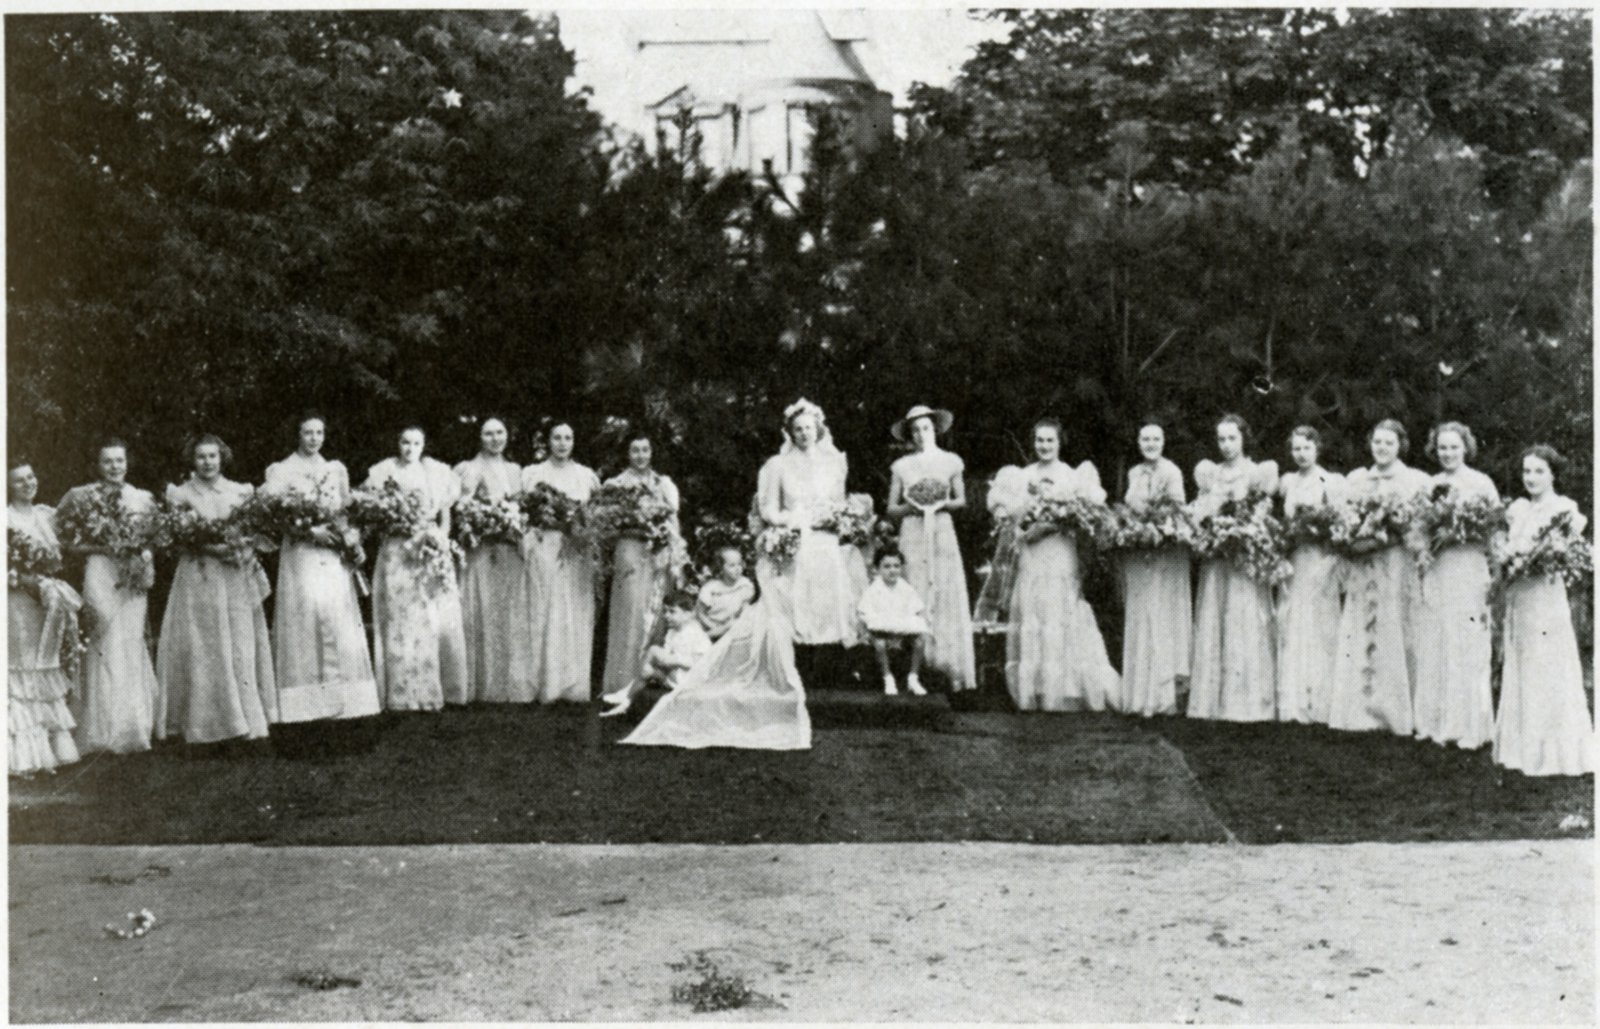 1937 Torch - May Day - Court - C. 1936 - 1937